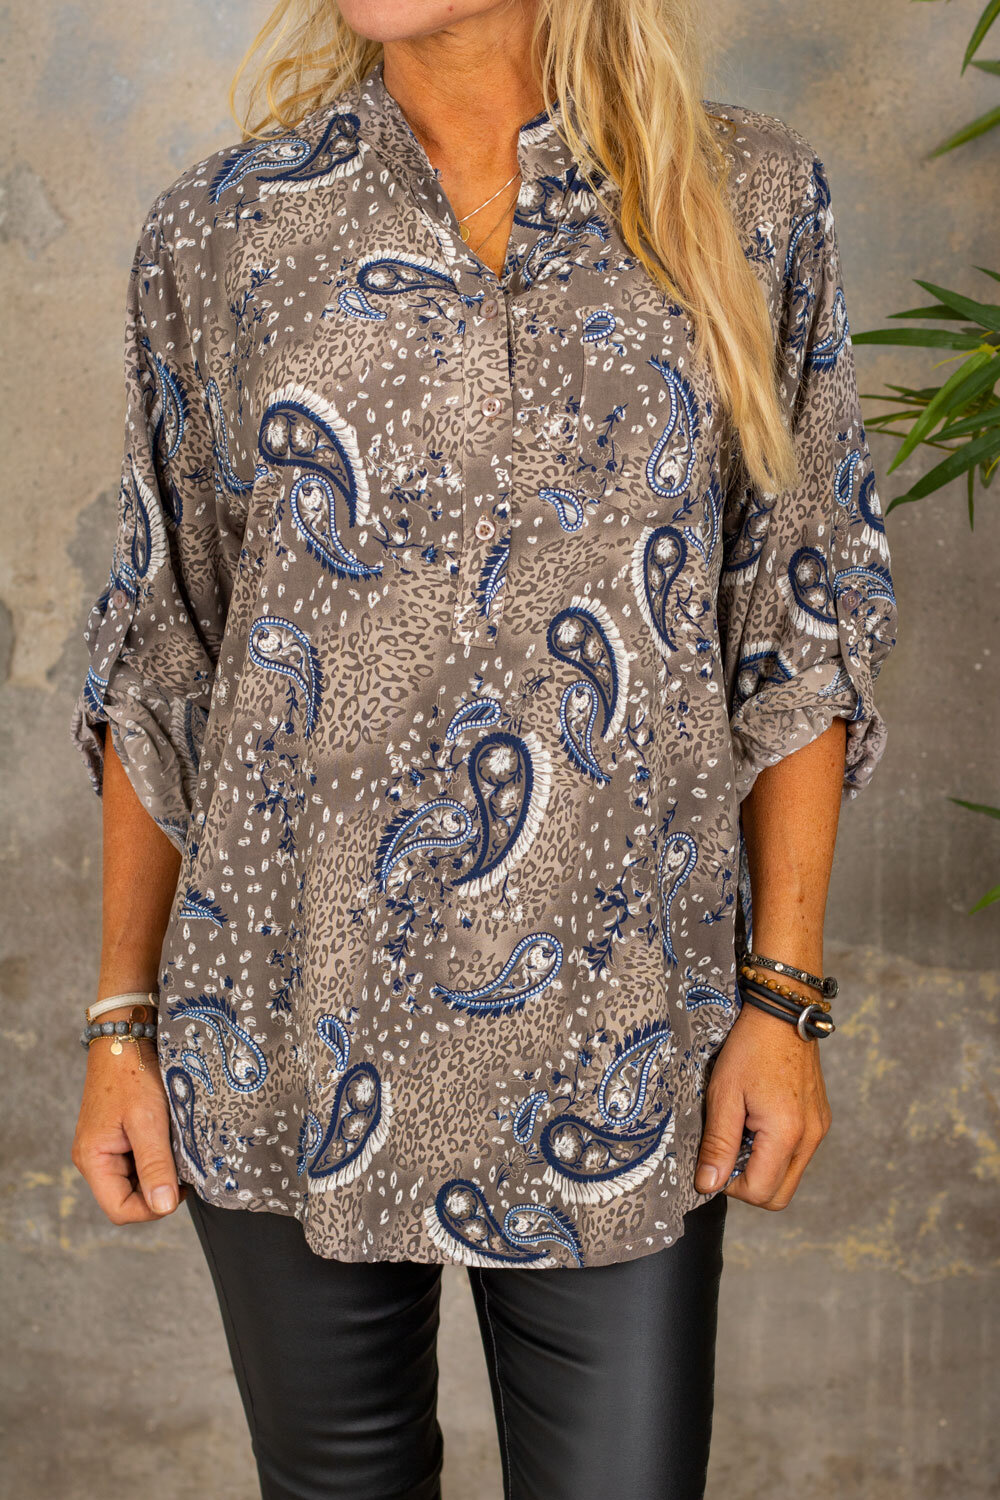 Cora Blouse - Paisley - Taupe